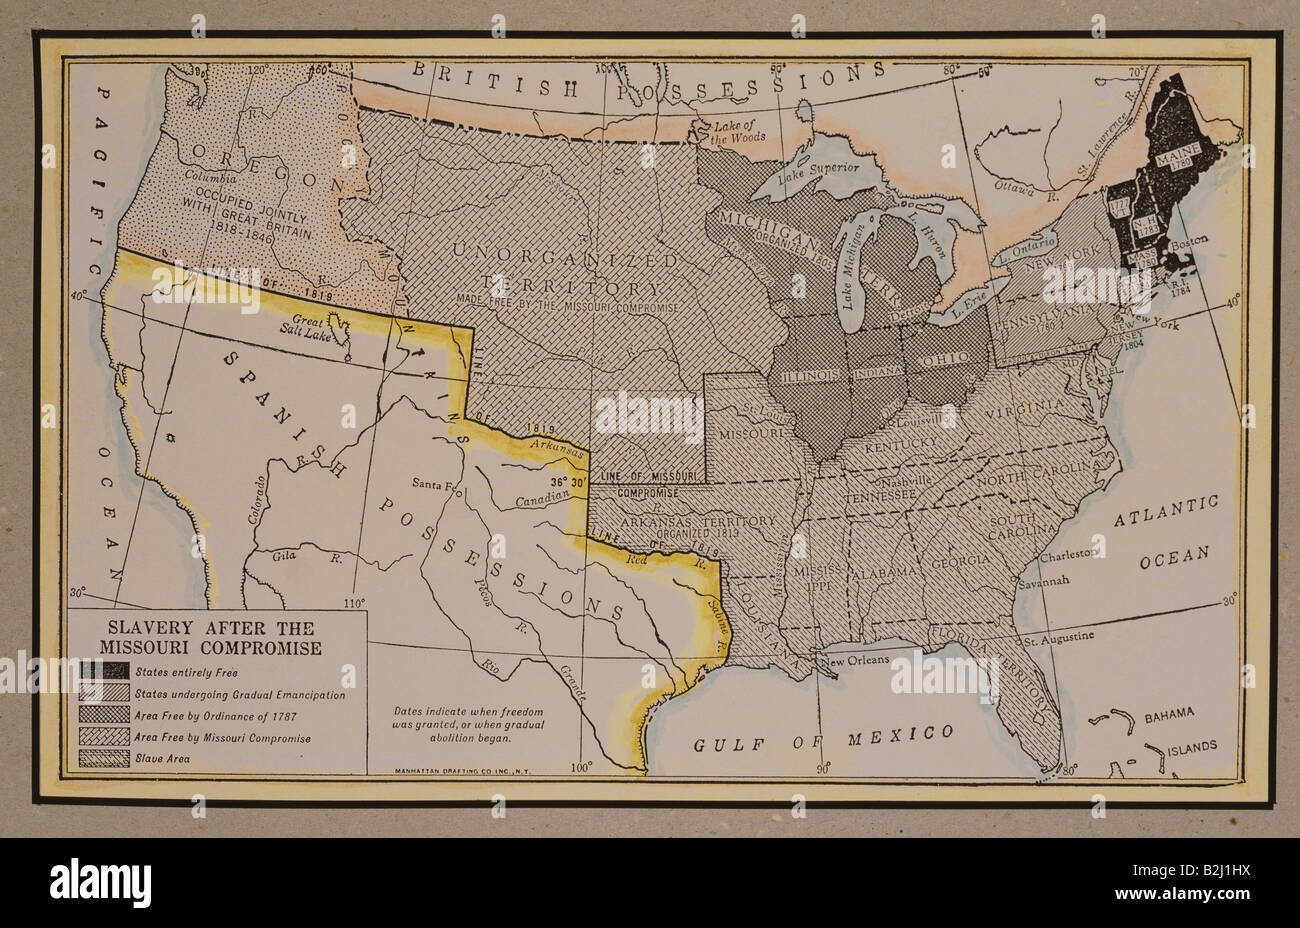 Map Of America 1820.Cartography Map North America Usa Spreading Of Slavery After